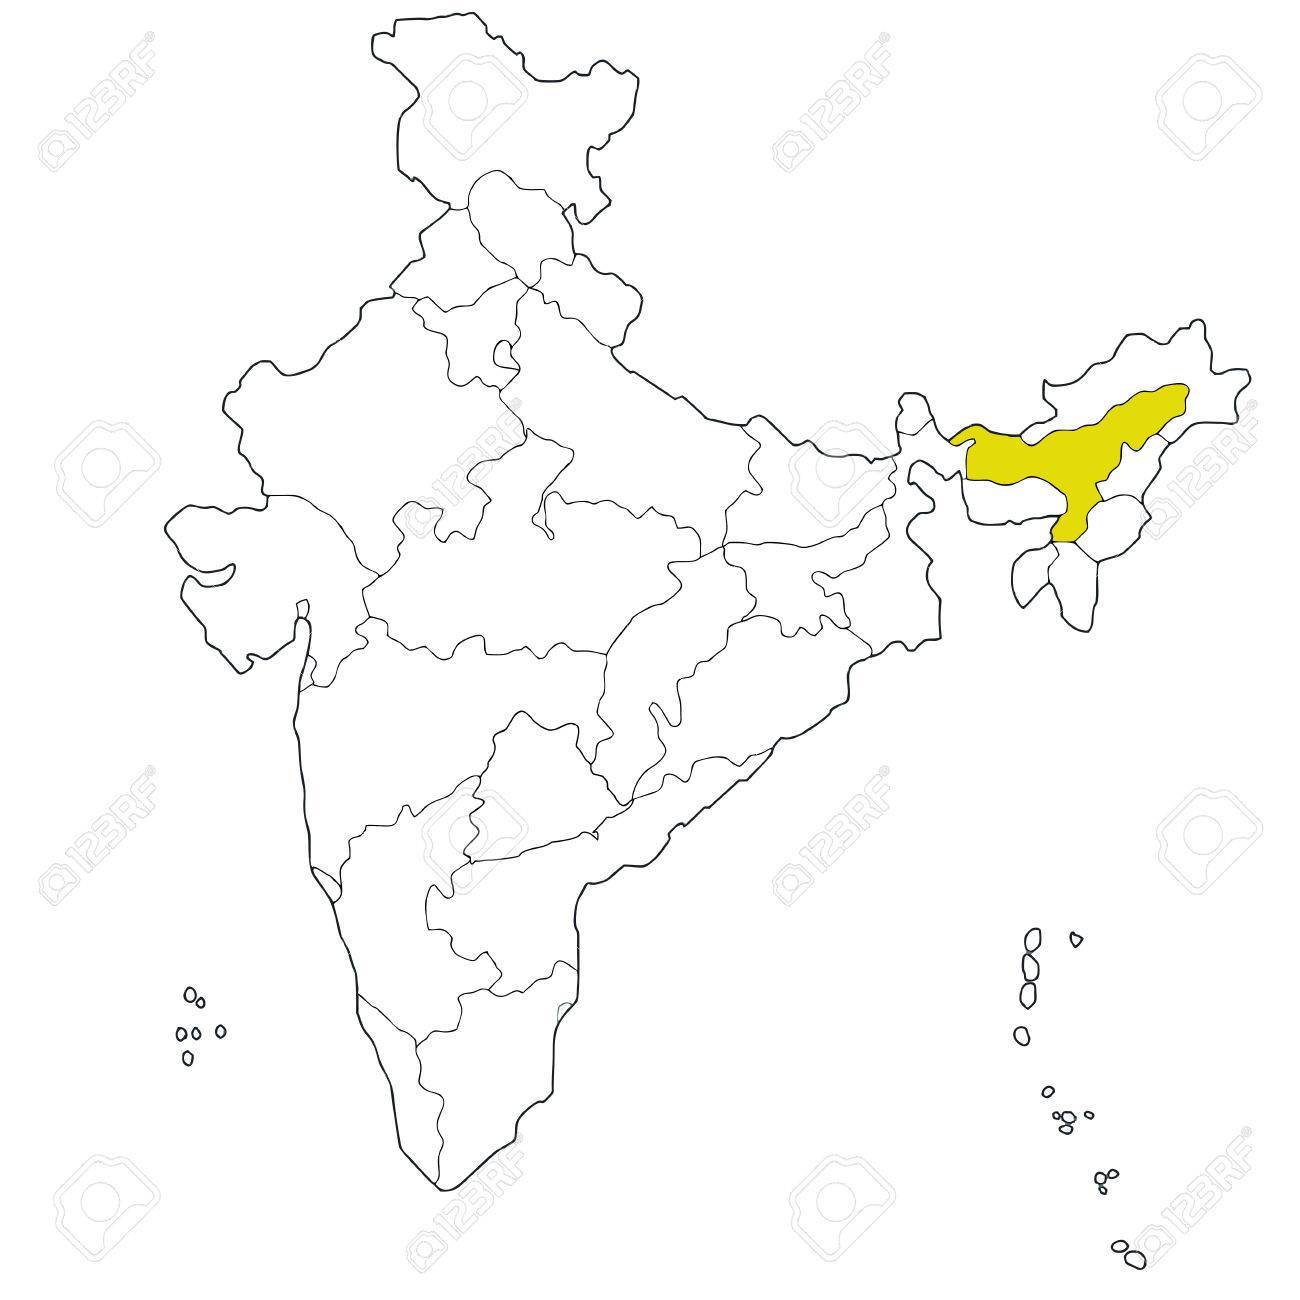 North Eastern State Assam On The Map Of India Royalty Free Cliparts